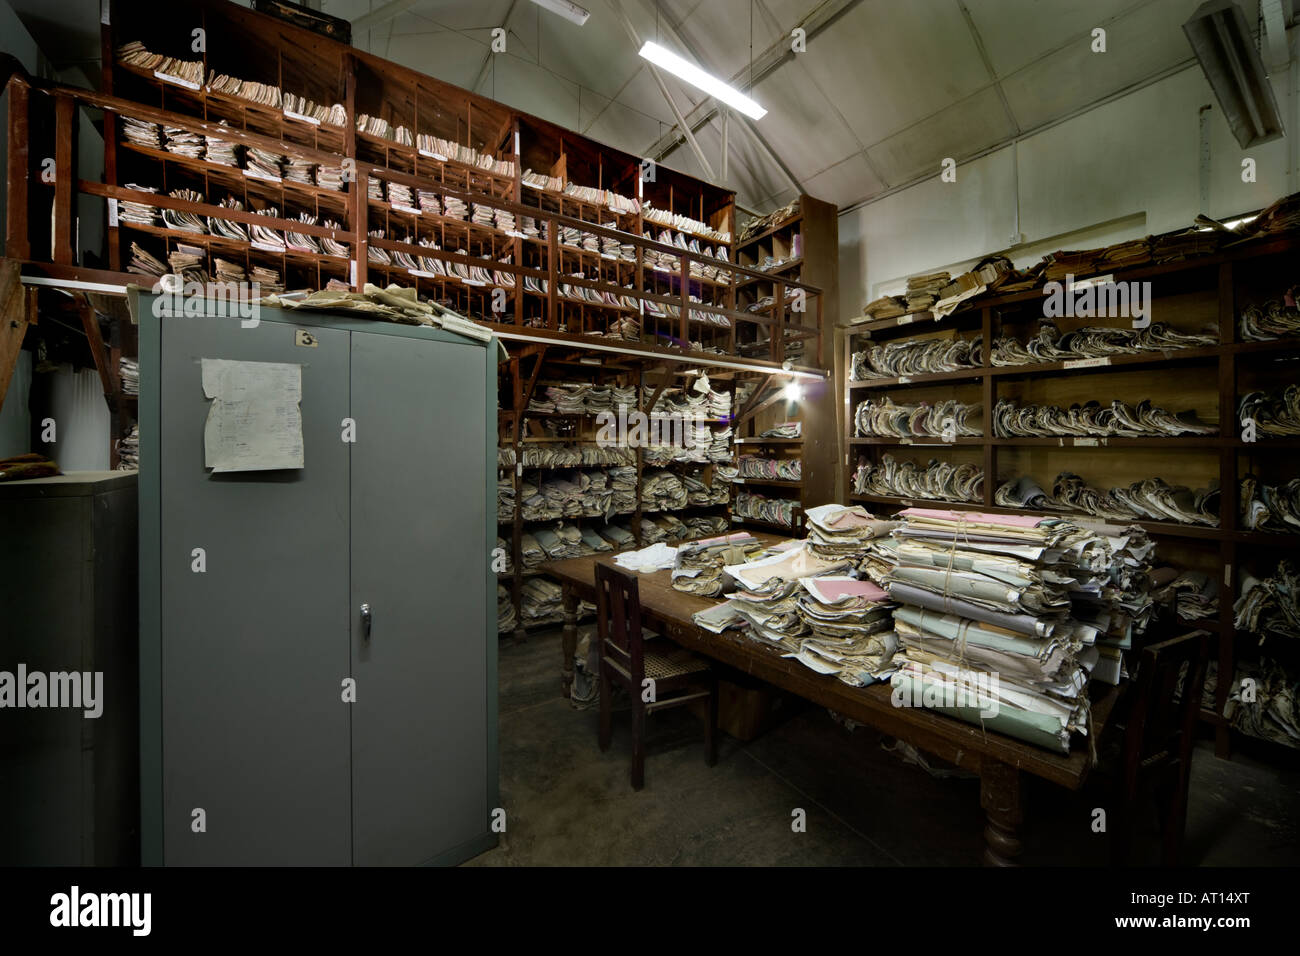 Dans une cour d'entreposage de documents d'archive pour le Sri Lanka Photo Stock